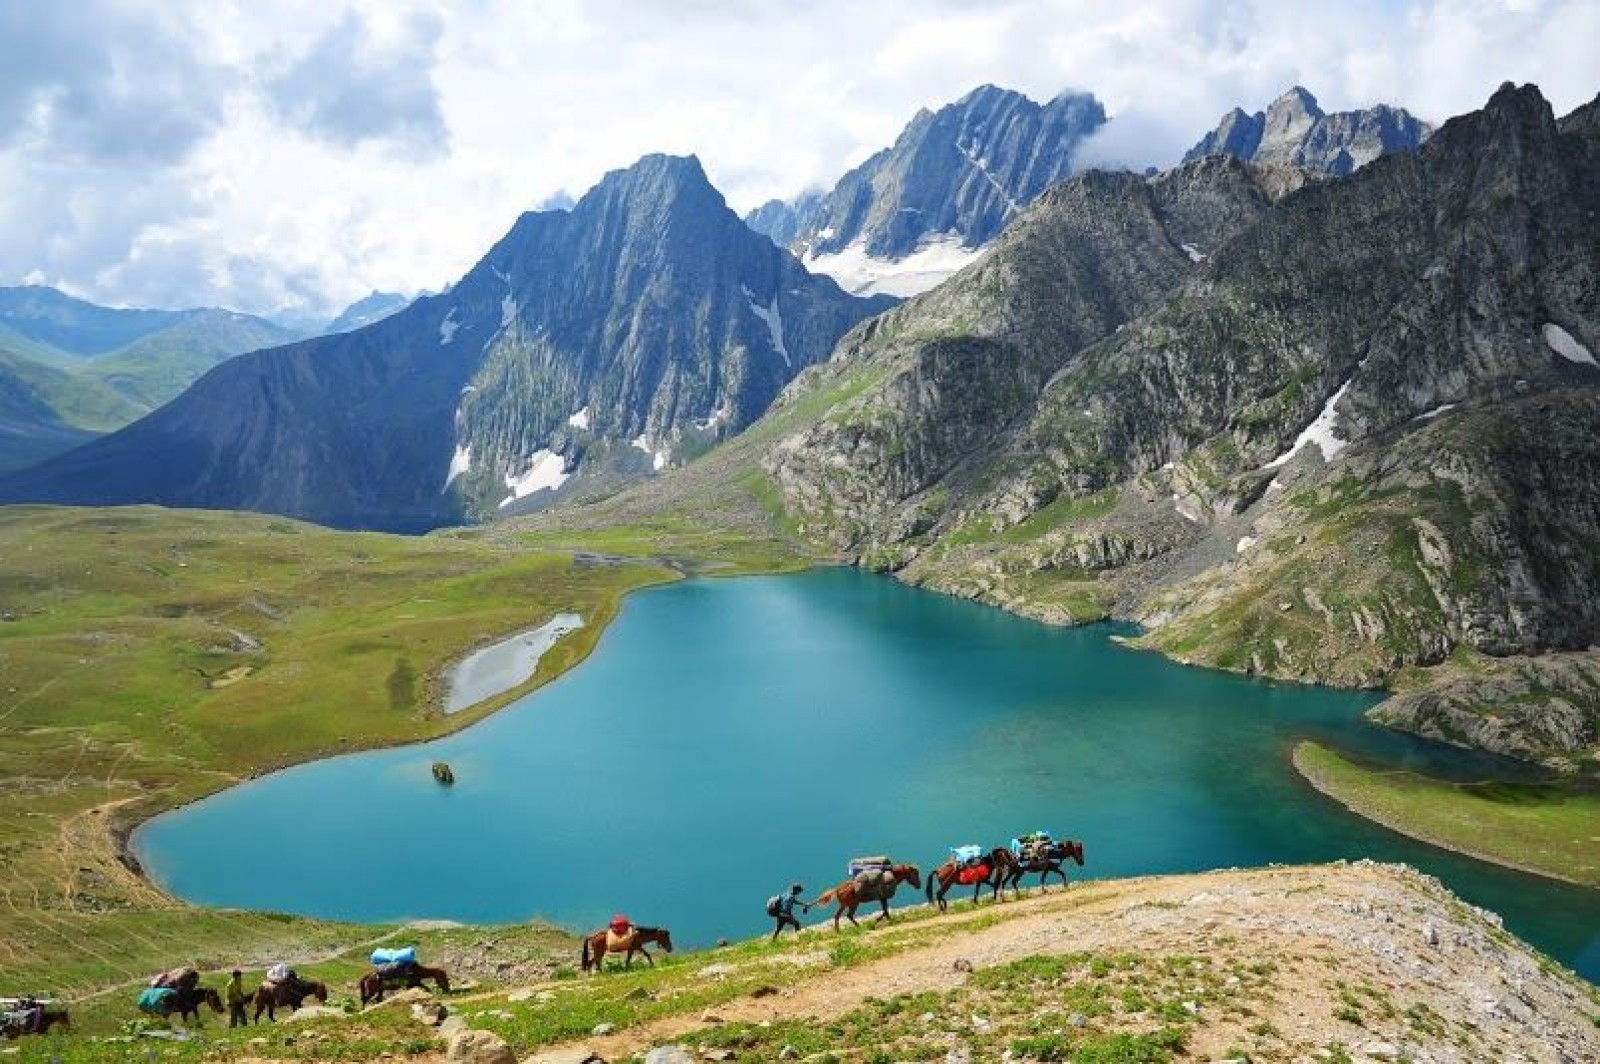 The Great Lakes of Kashmir